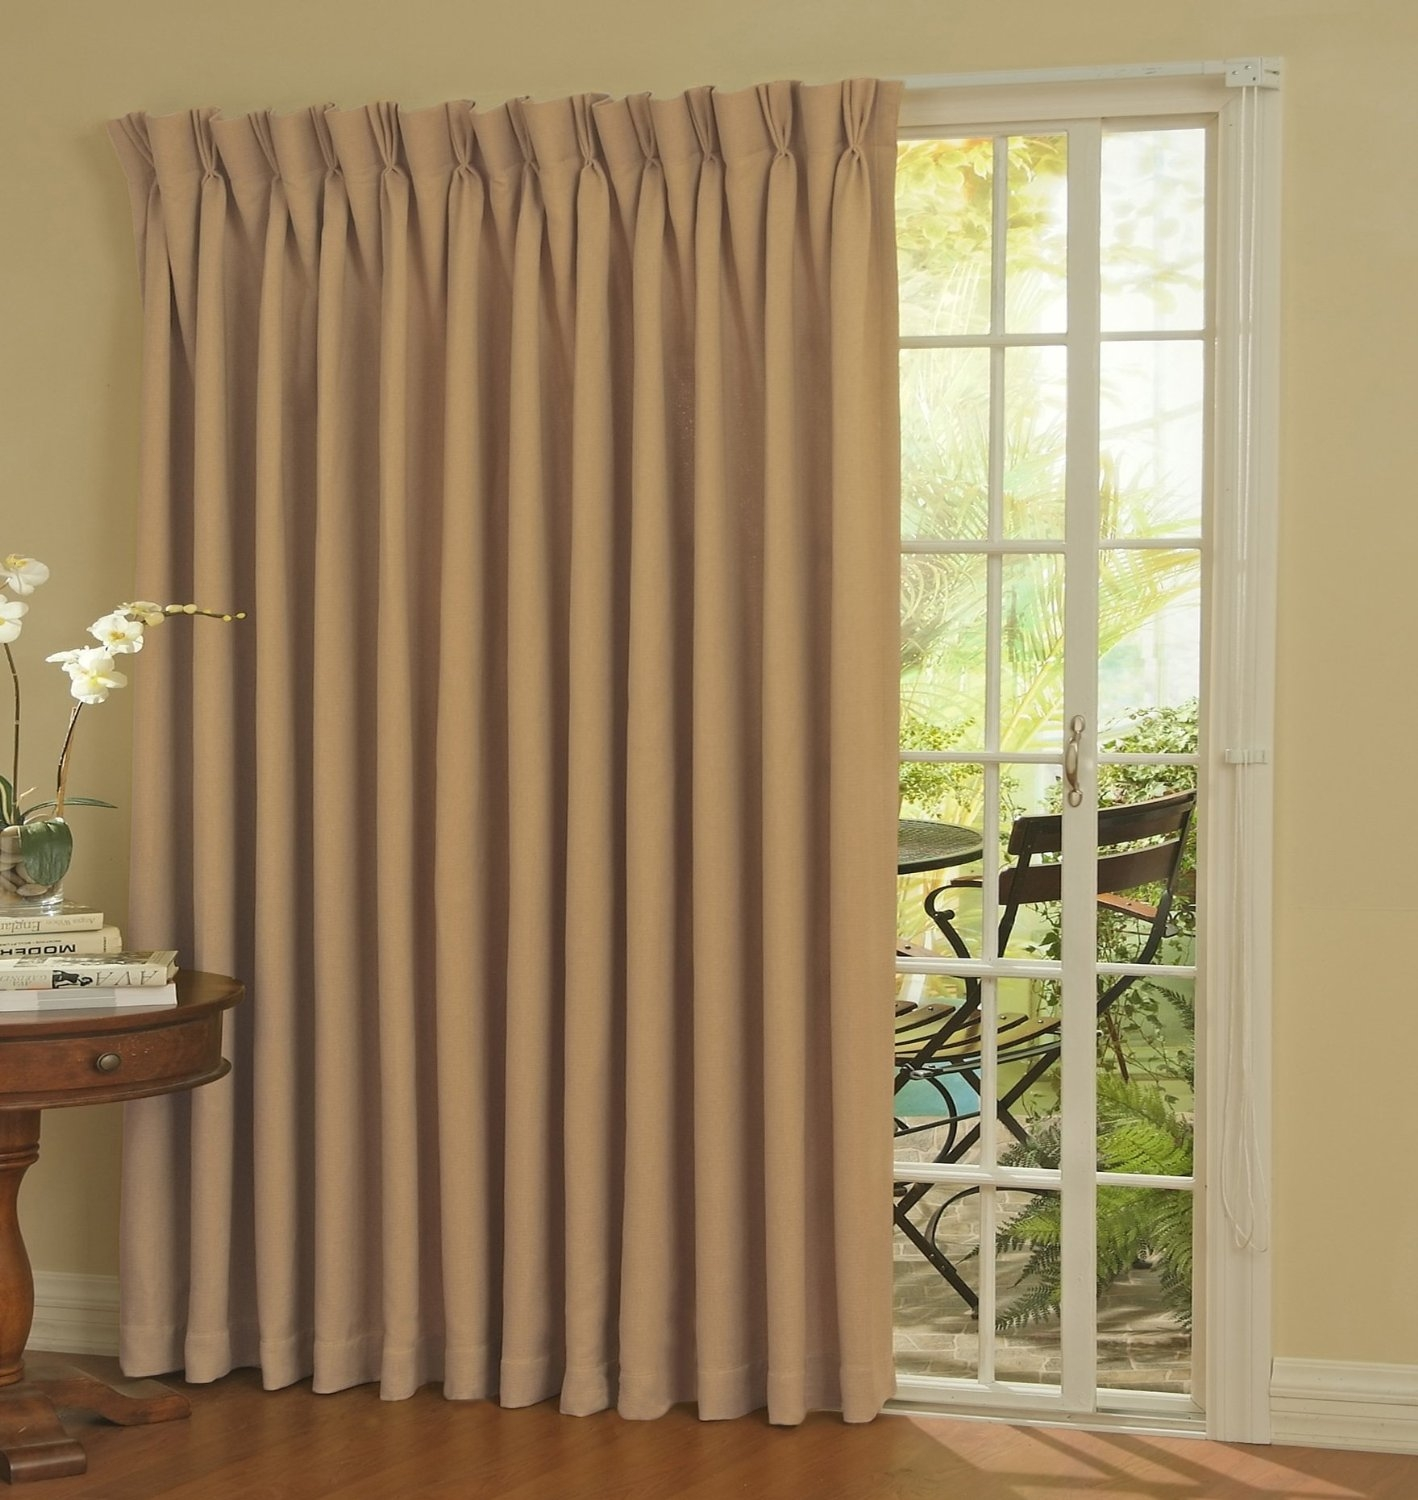 Window Target Drapes Short Blackout Curtains Thermal Curtains Pertaining To Short Brown Curtains (Image 24 of 25)